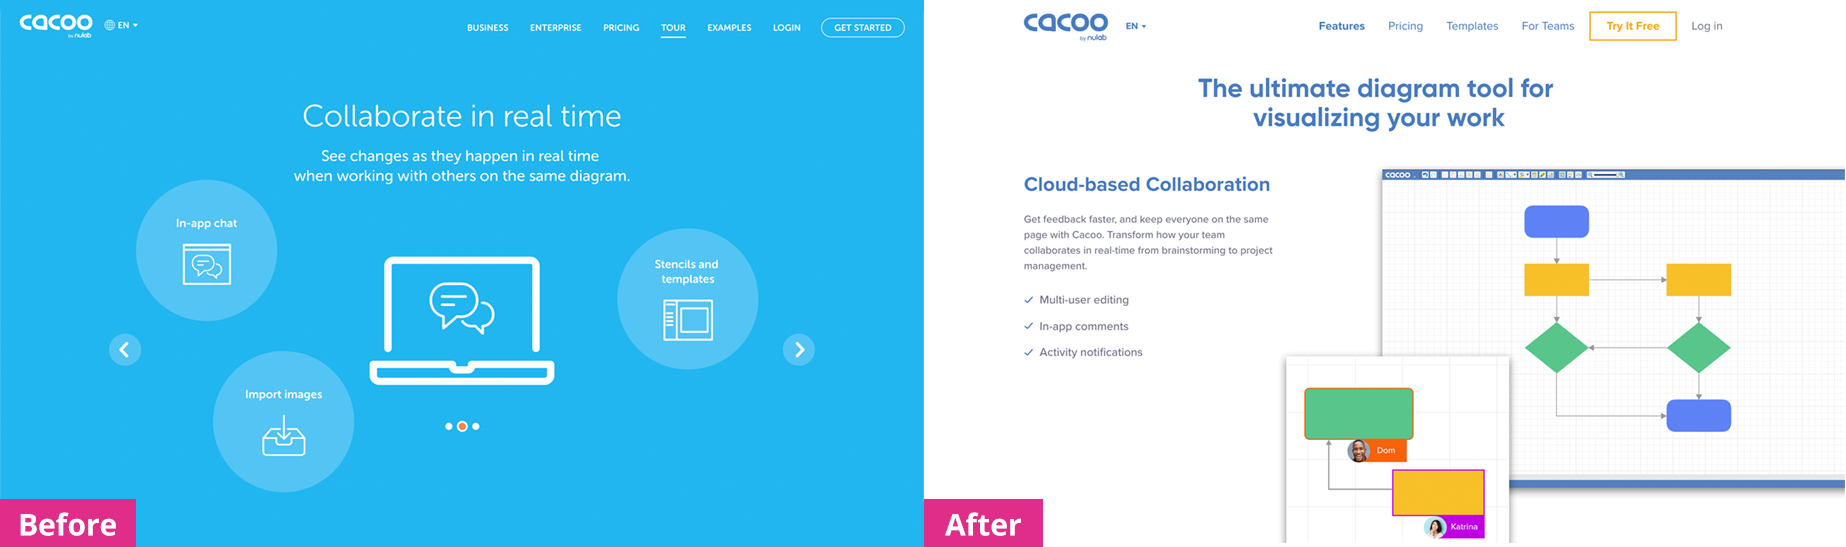 cacoo website before and after